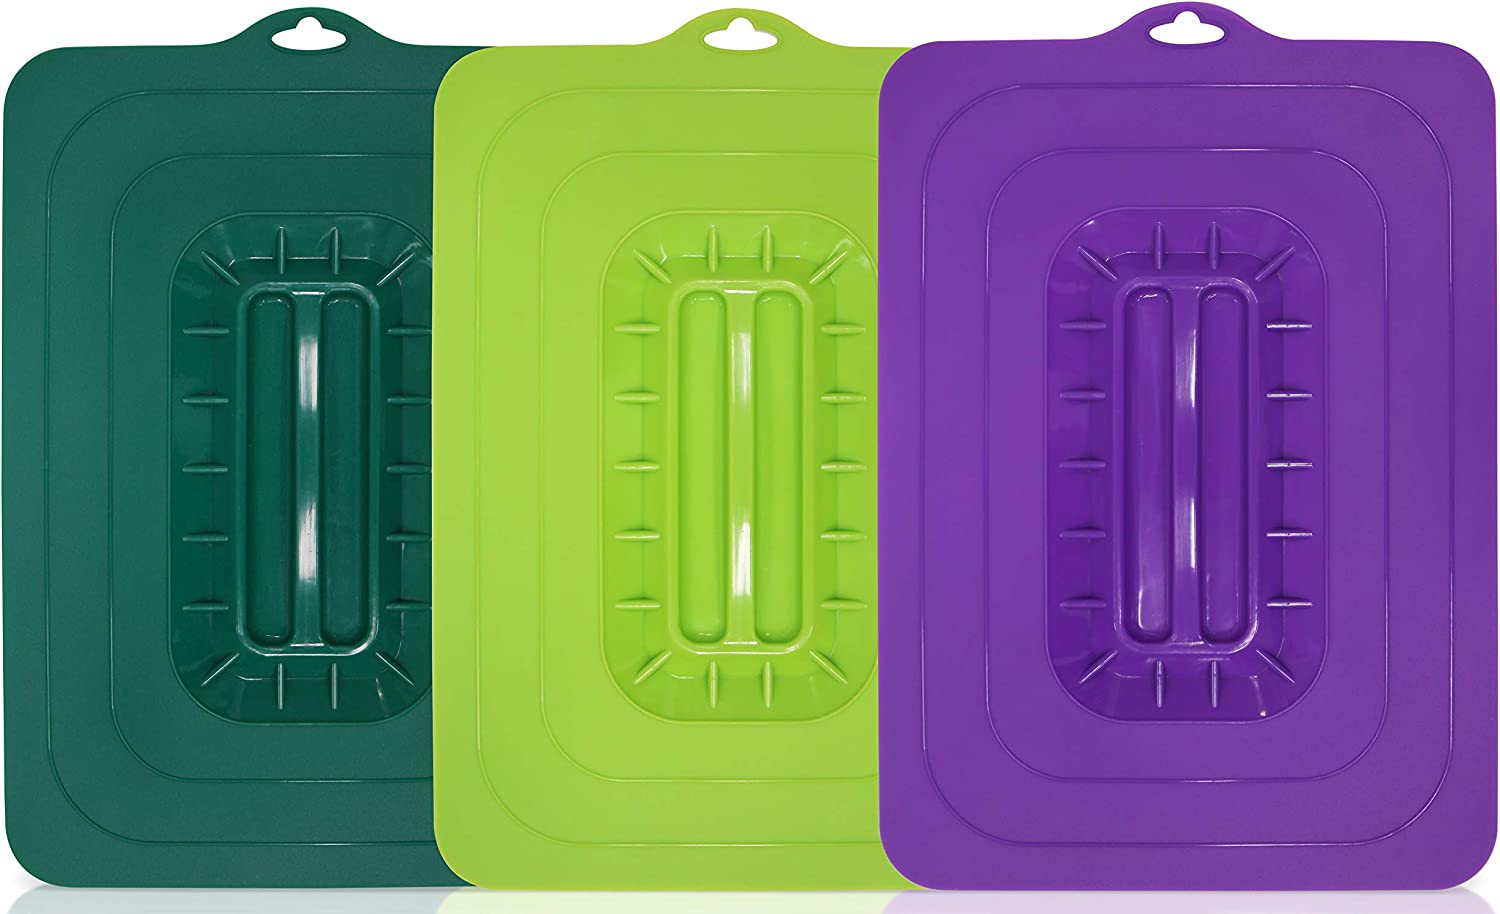 Maxi-Matic ECL-3016 Rectangular Silicone Suction Lids and Food Covers Fits various sizes of casseroles, baking pans, dishes or containers, Set of 3,